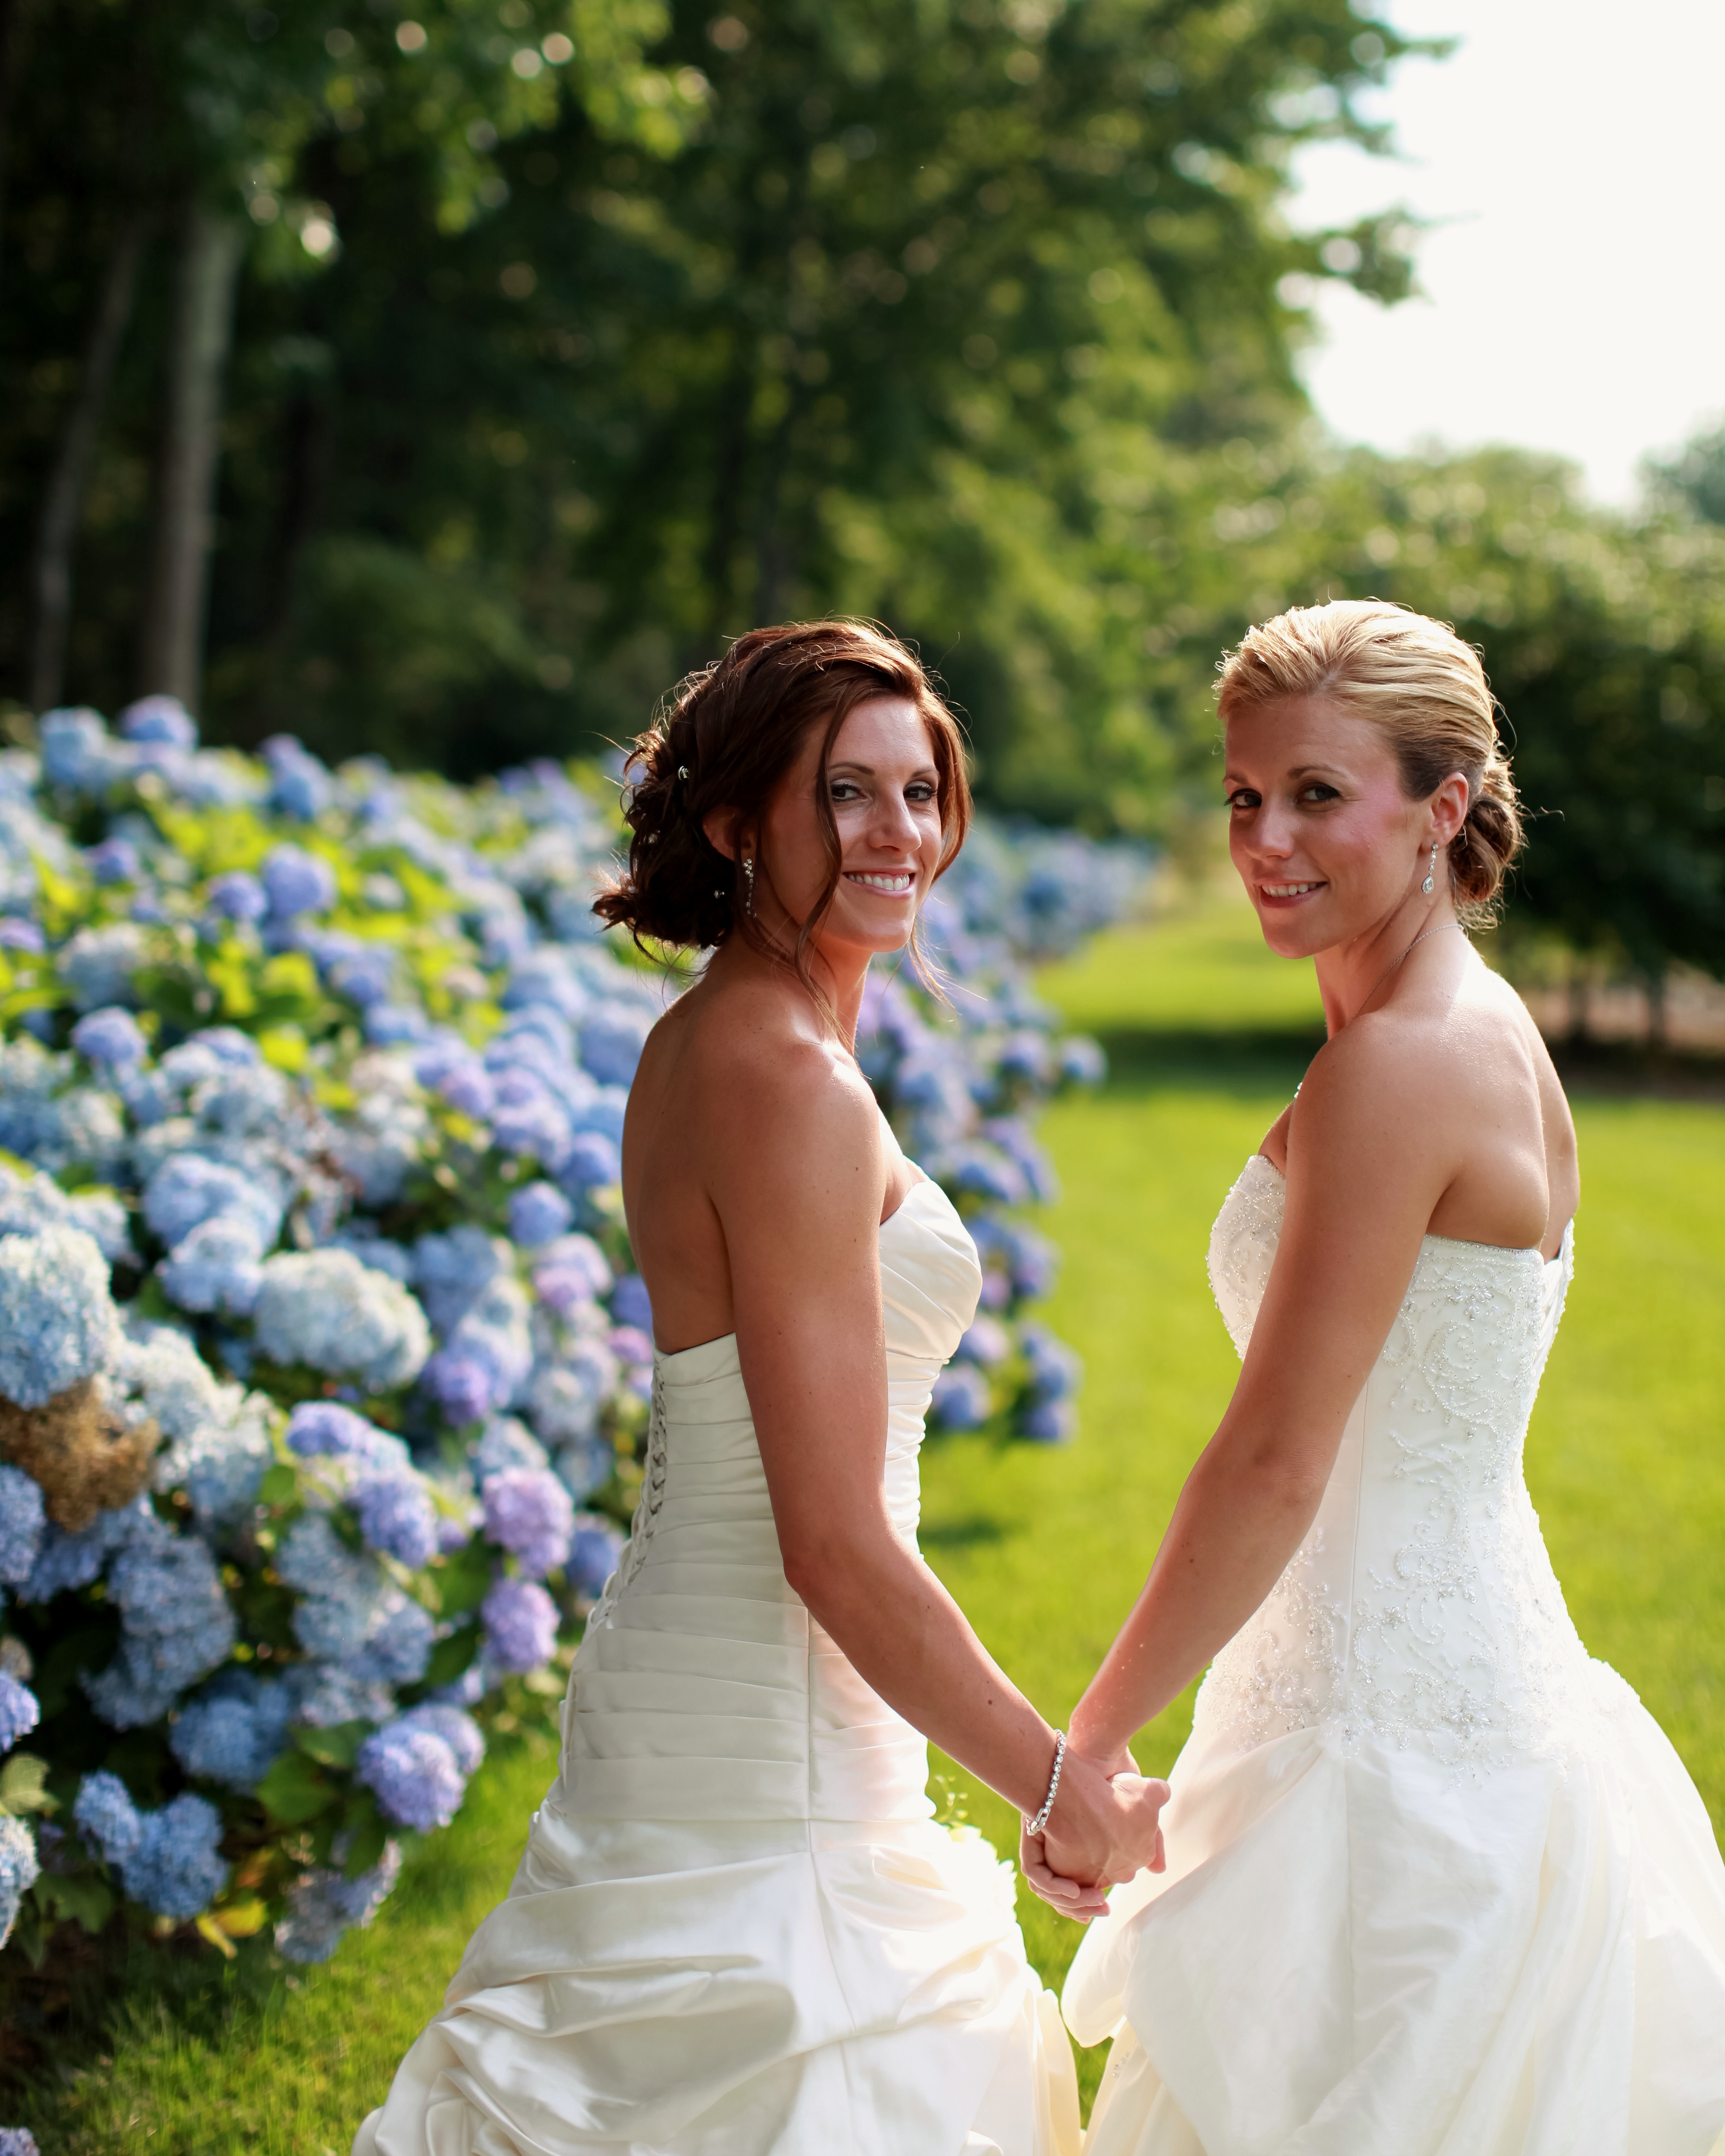 lesbian wedding lesbian wedding ideas 10 best images about Lesbian Wedding on Pinterest Gay couple My sister and We are together